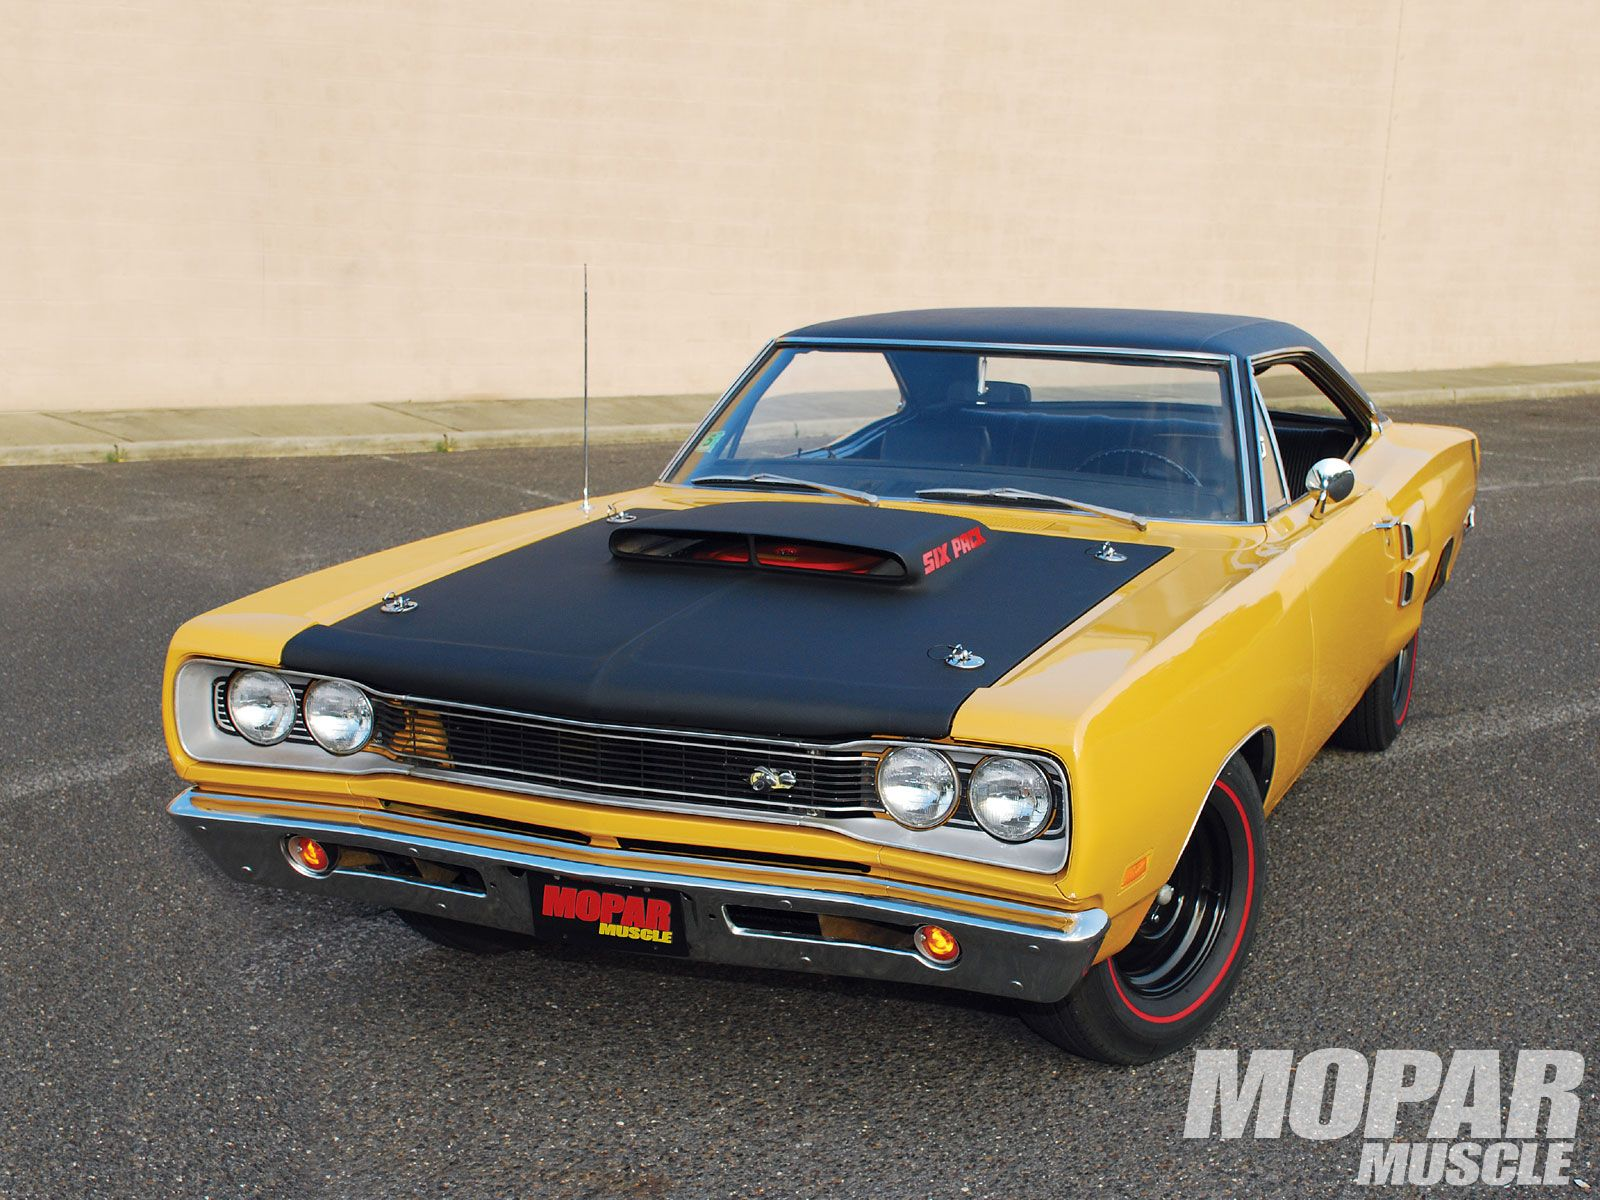 1968 / 1969) Dodge Coronet Super Bee | Dodge coronet, Bees and Mopar